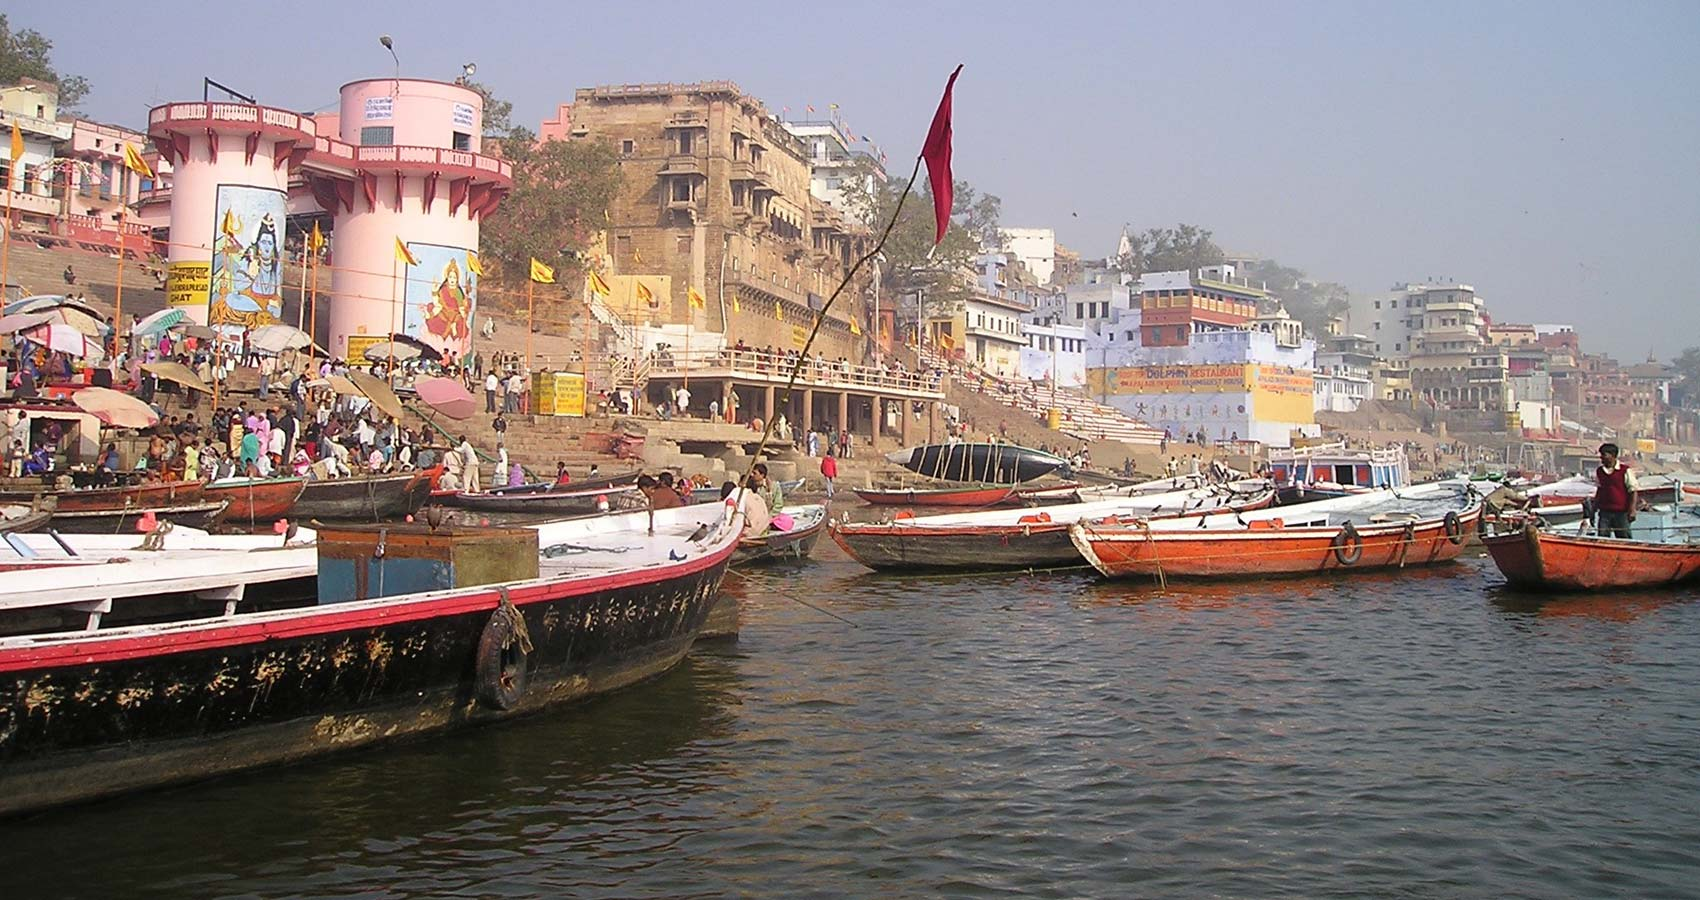 Another Ganga, poetry by Chaitali Sengupta at Spillwords.com